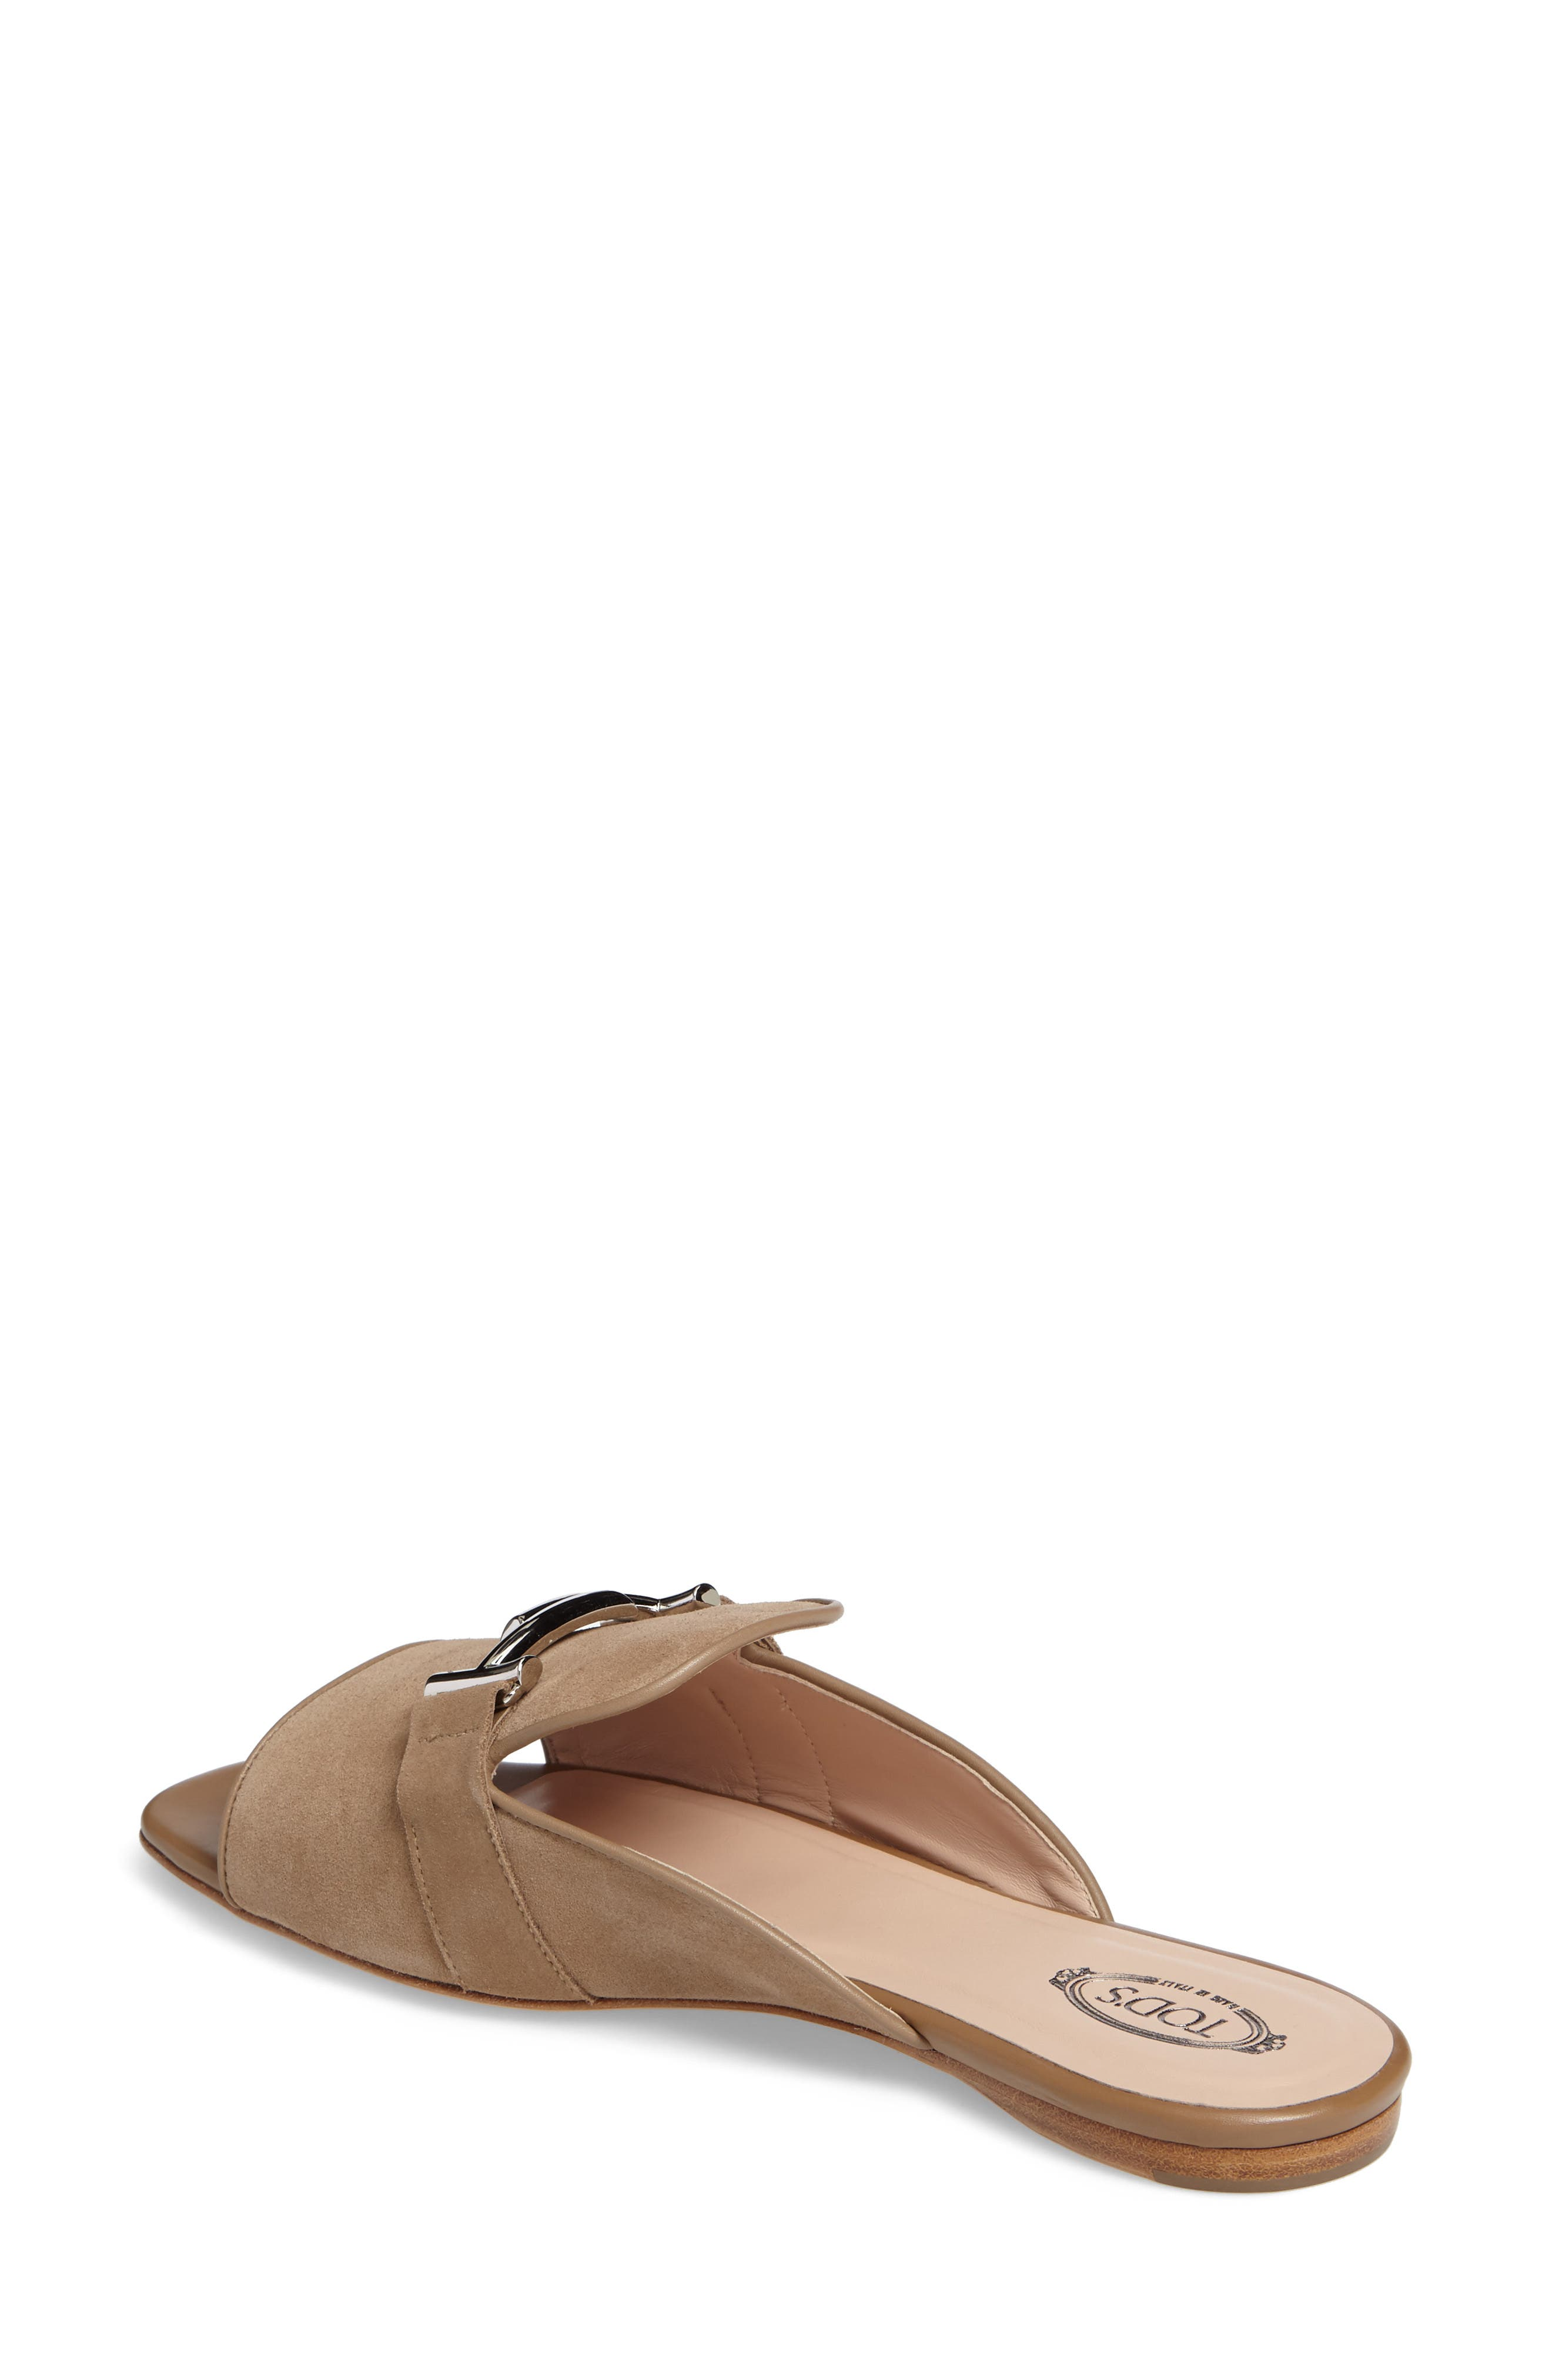 Double T Open Toe Loafer Mule,                             Alternate thumbnail 2, color,                             Tan